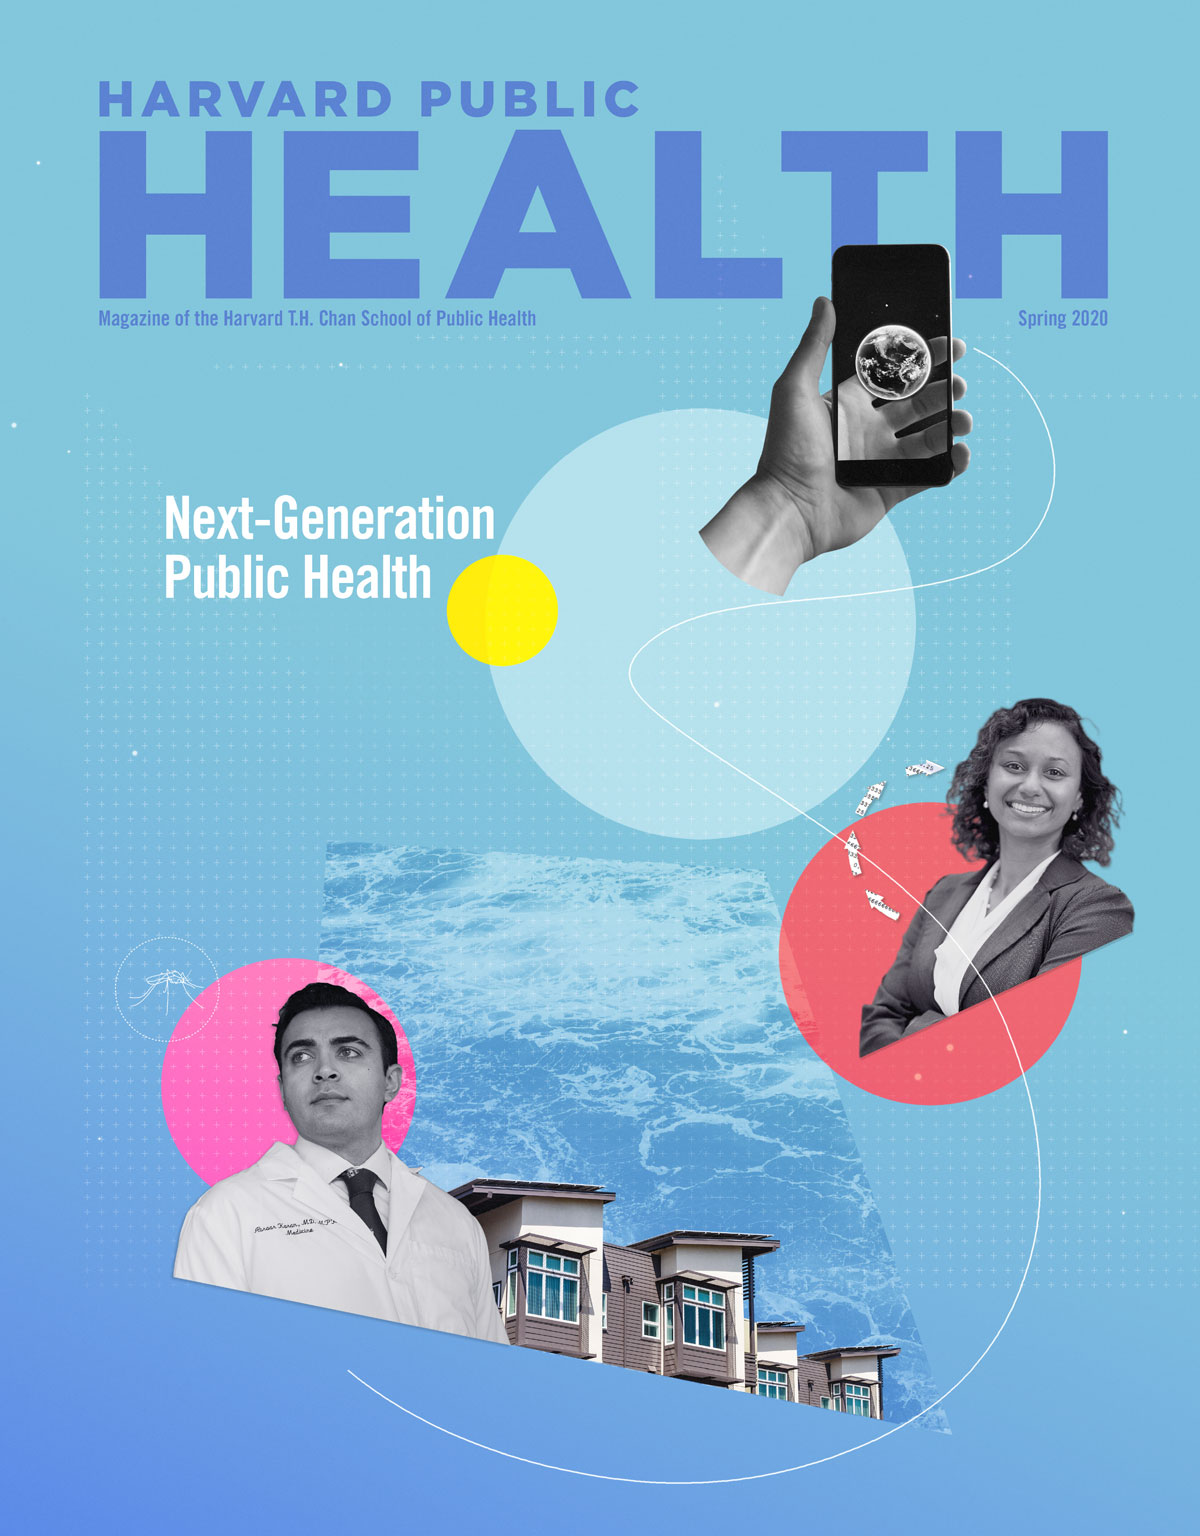 The cover page of the Harvard Public Health Magazine, Spring 2020 edition. This issue of the magazine includes a feature about the Apple Women's Health Study.